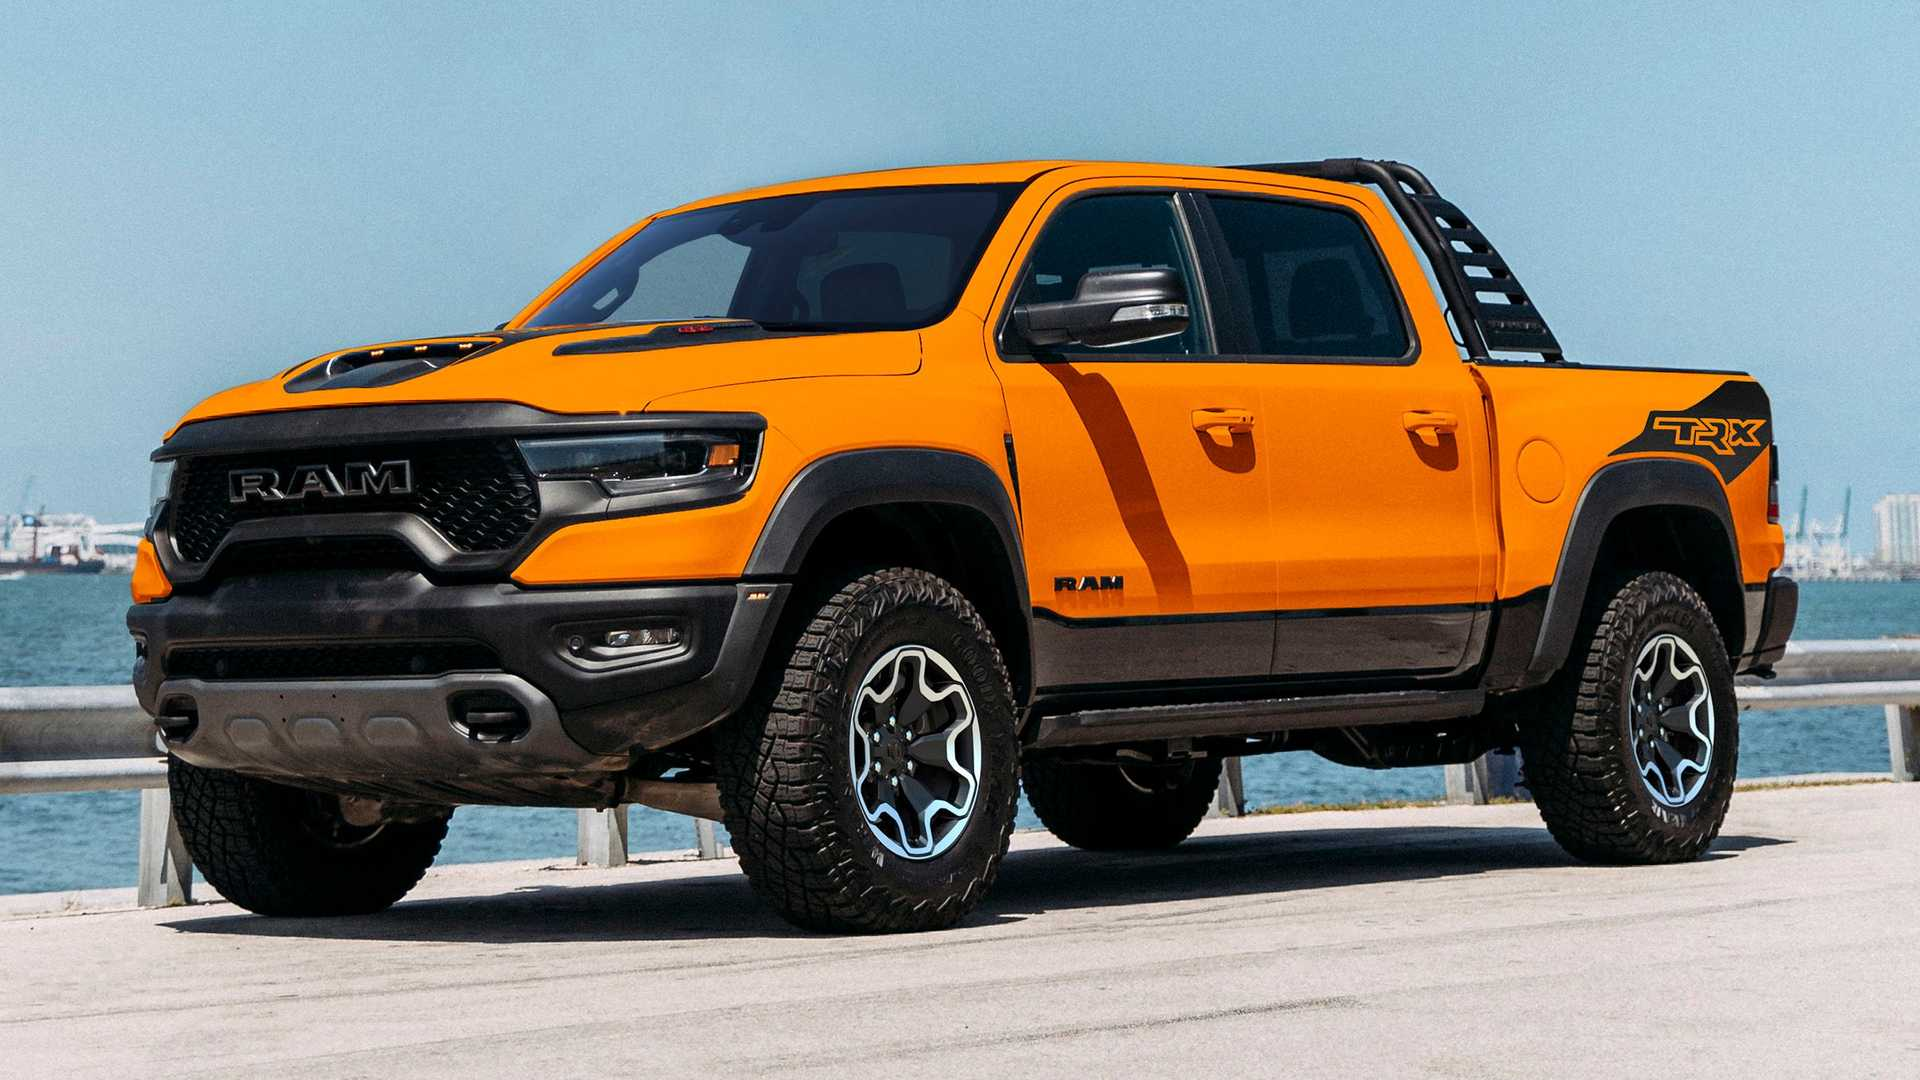 Ram has rolled out a handful of exclusive editions of its 1500 pickup truck, some of them already available to order.